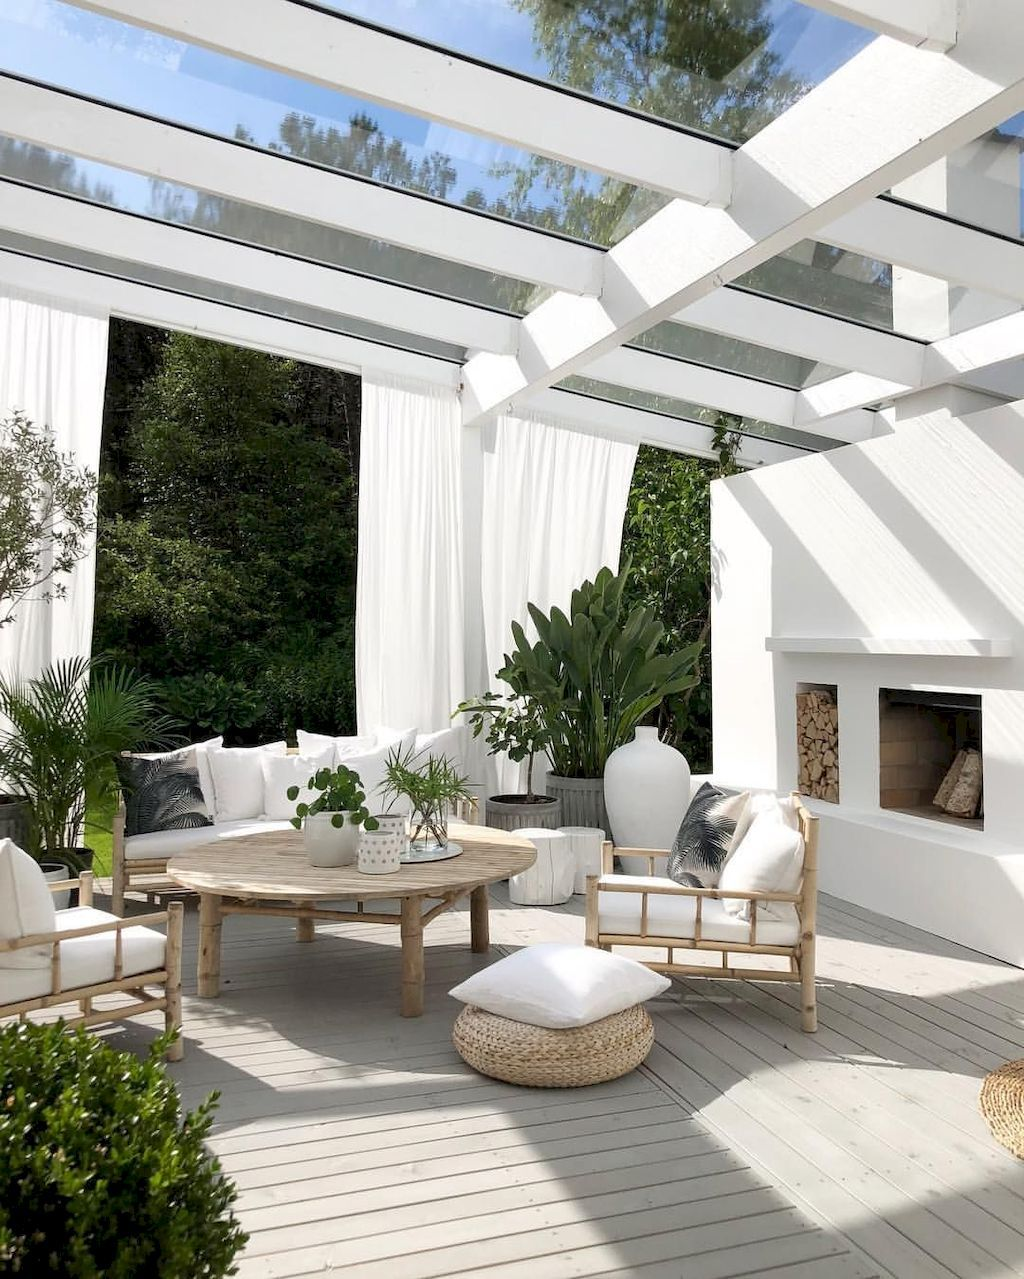 22 Incredible Budget Gardening Ideas: Amazing Outdoor Oasis For Landscape Design